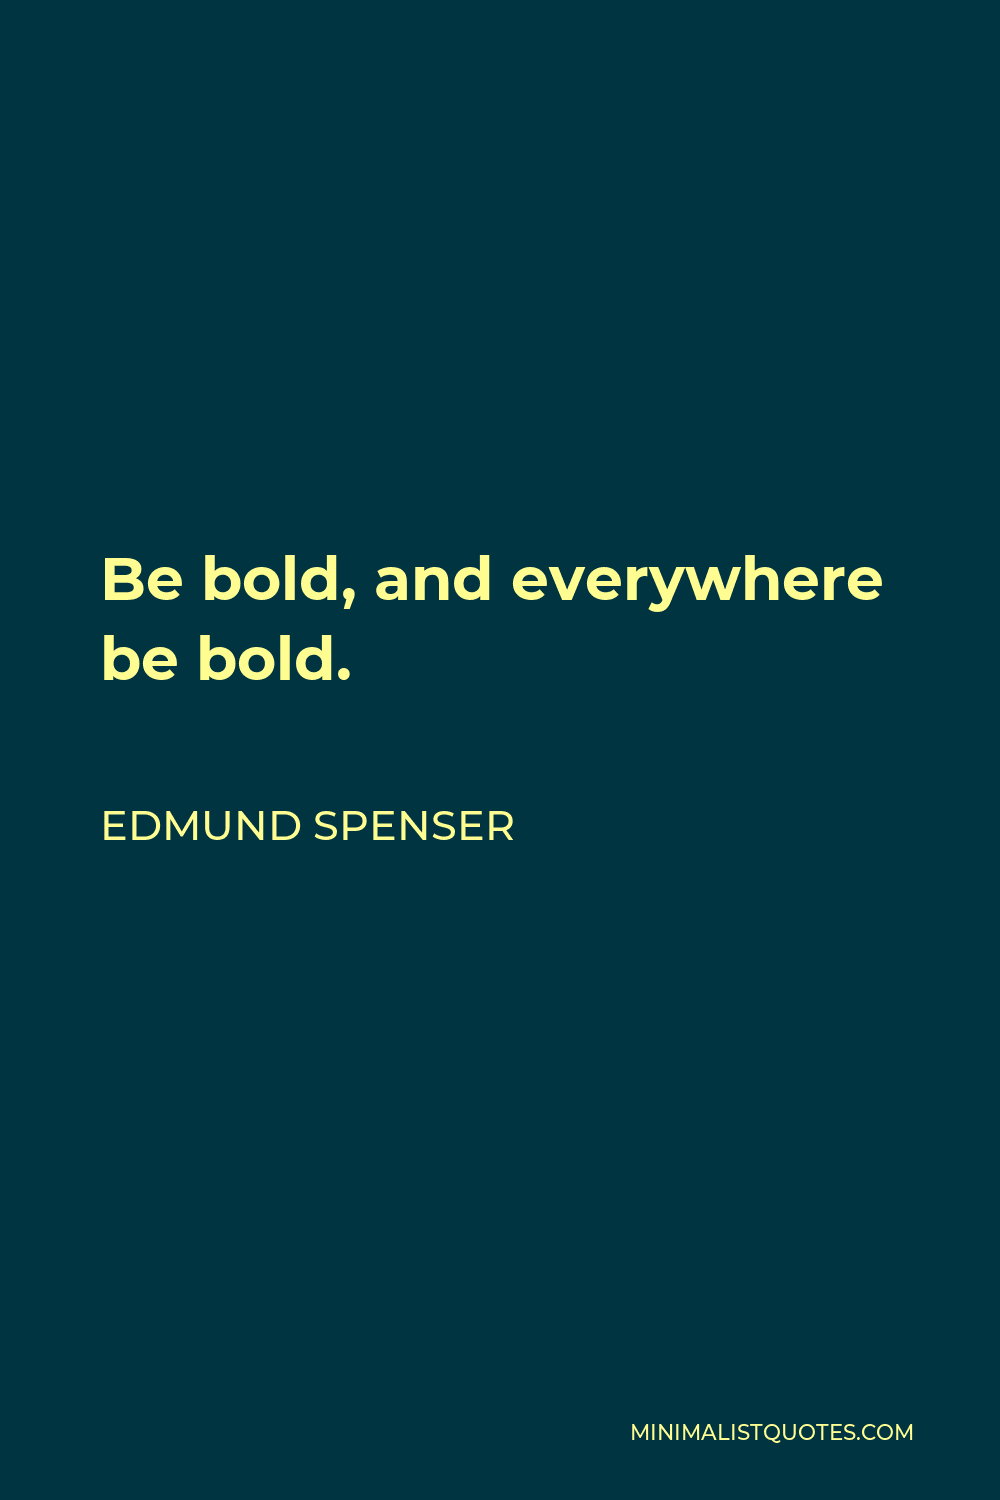 Edmund Spenser Quote - Be bold, and everywhere be bold.